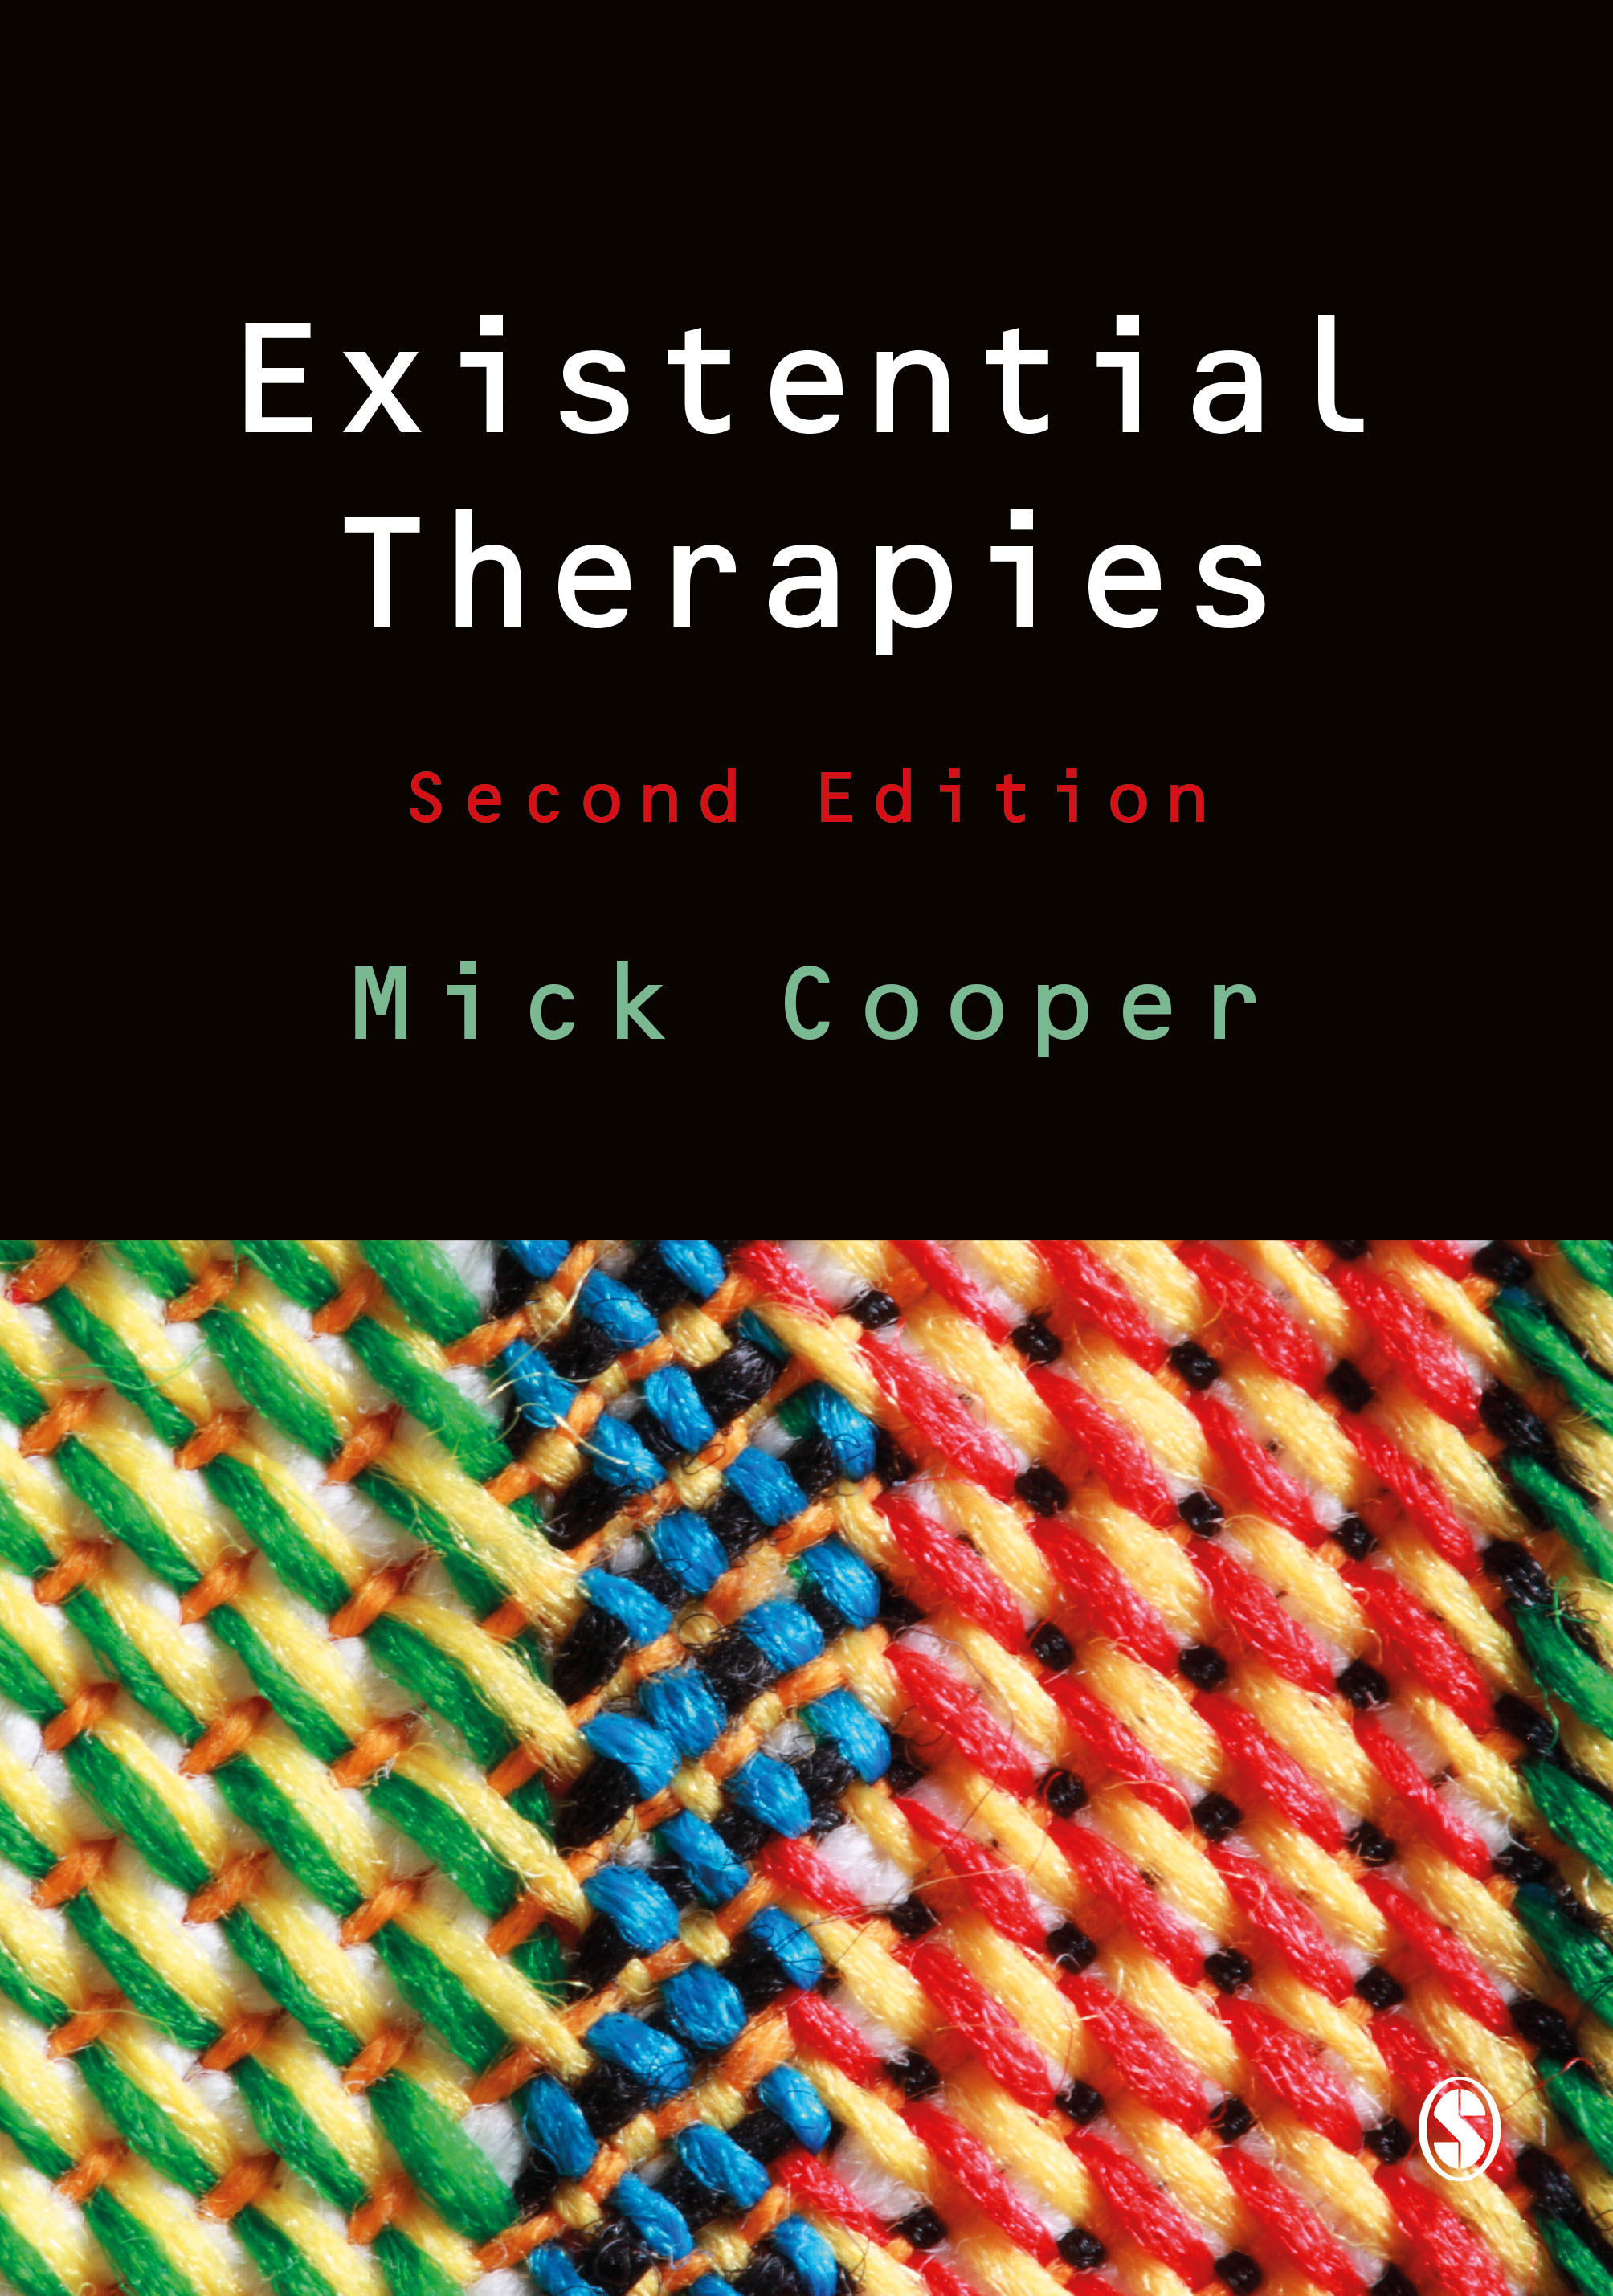 Existential Therapies book cover image